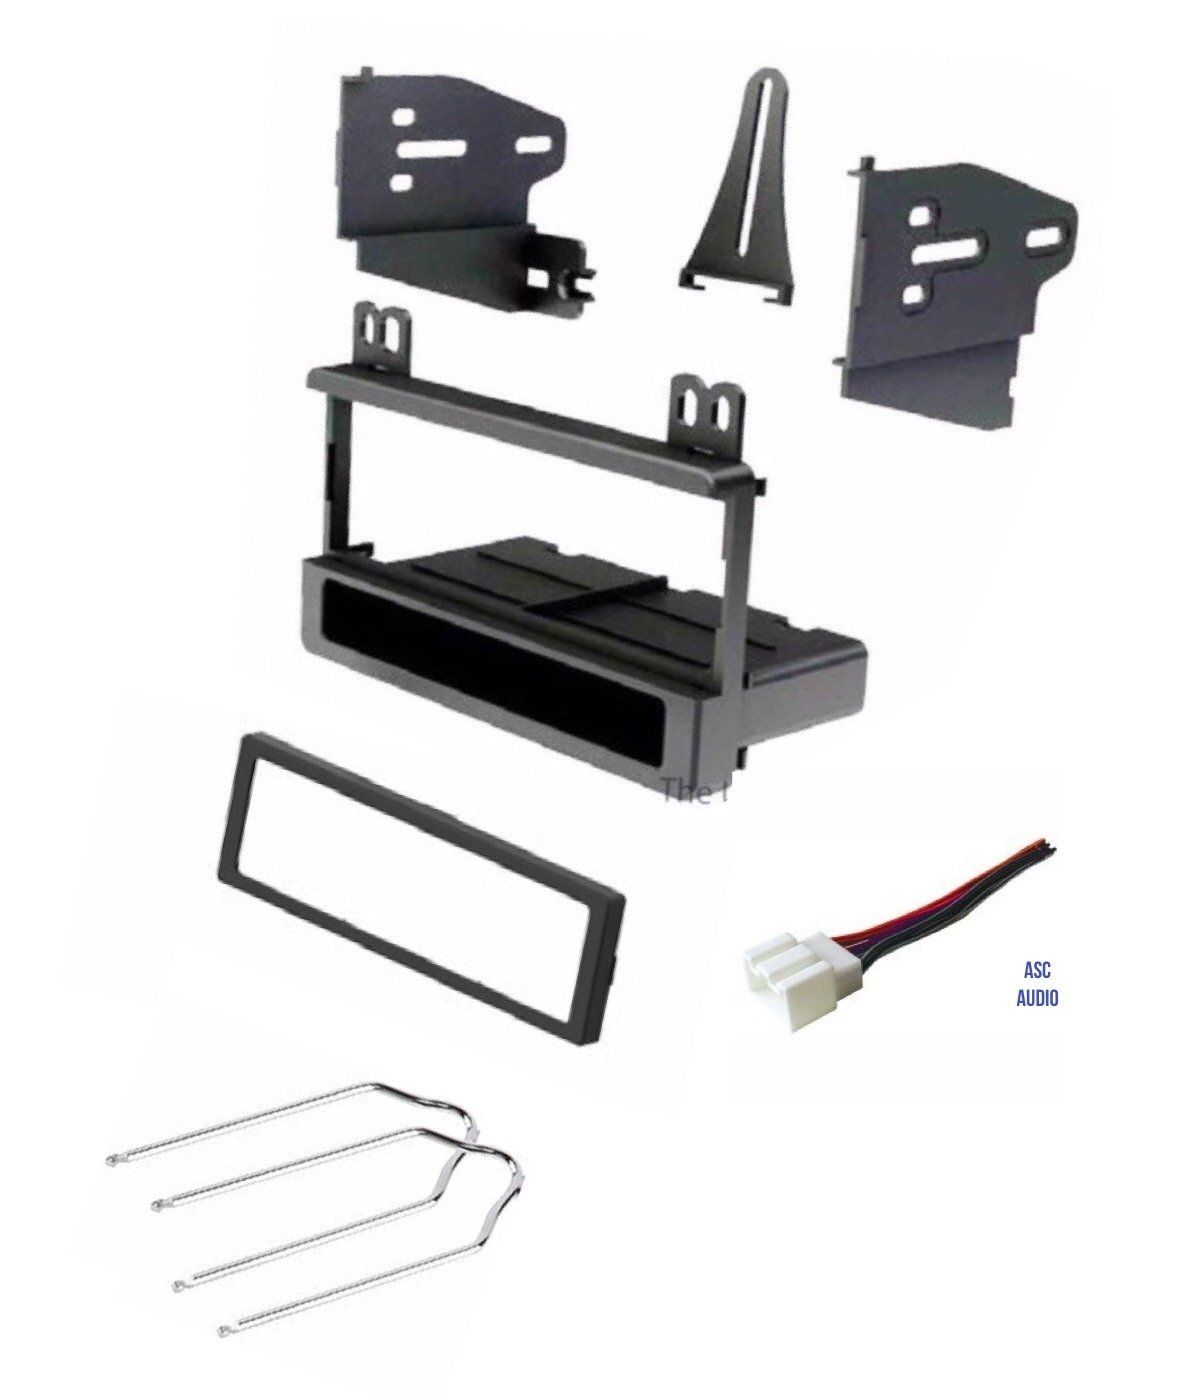 7408b99124249a5a7b8501d0b9d36e6e car stereo dash kit, wire harness, and radio tool for installing a on ford econoline 2003 stereo wiring harness to single din